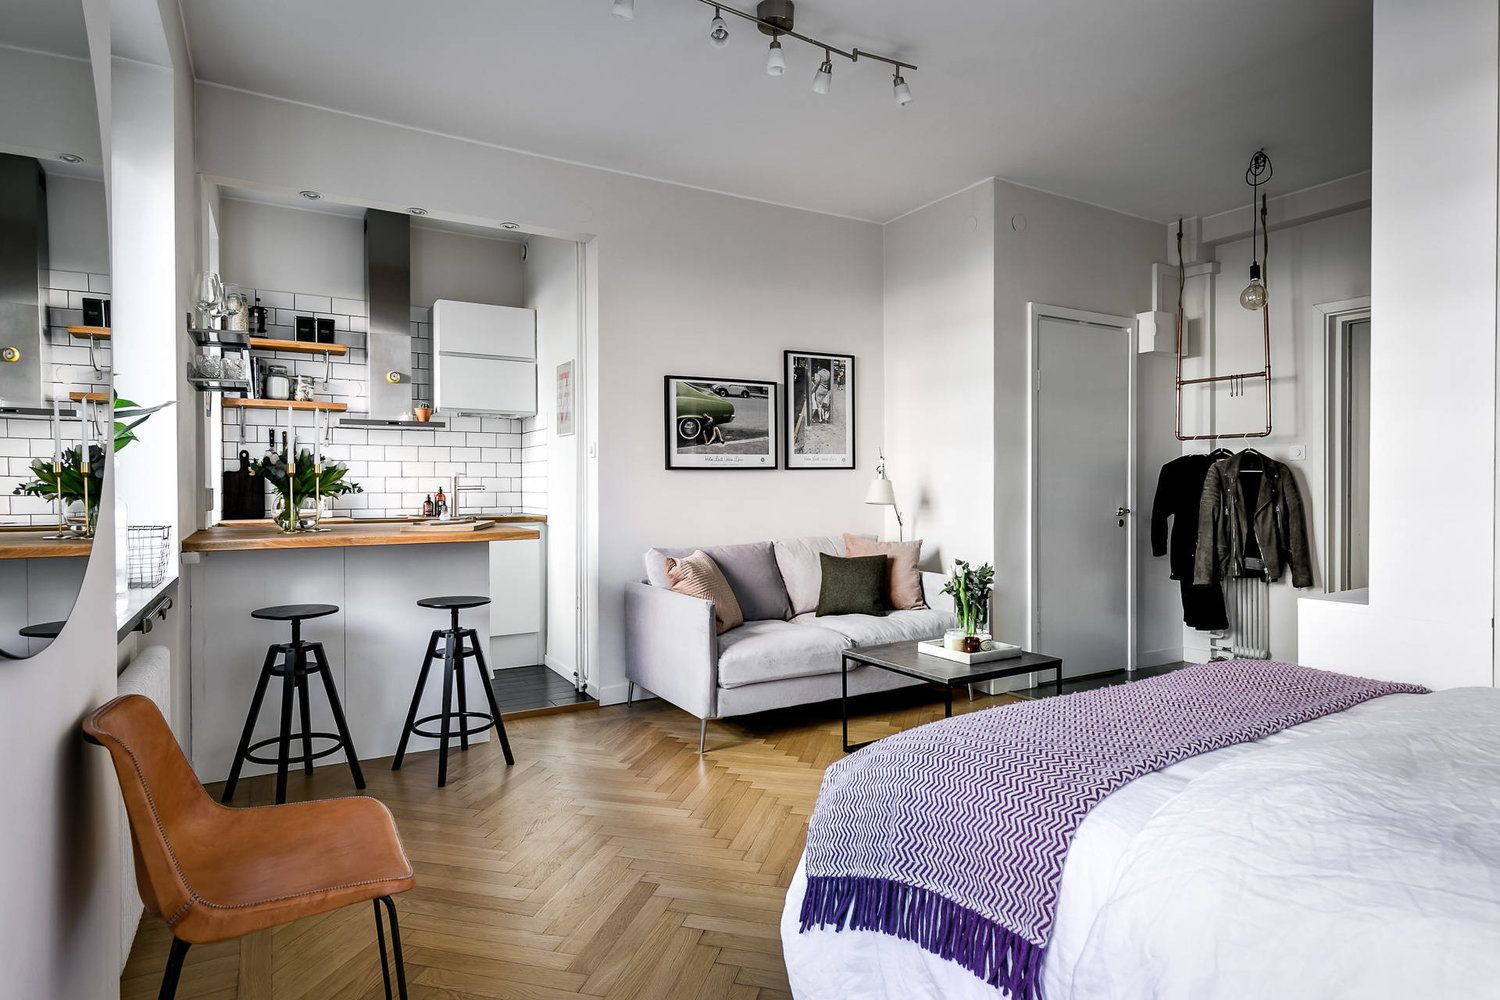 Cozy One Room Apartment In Perfect Style Apartment Bedroom Decor Apartment Room Small Apartment Bedrooms